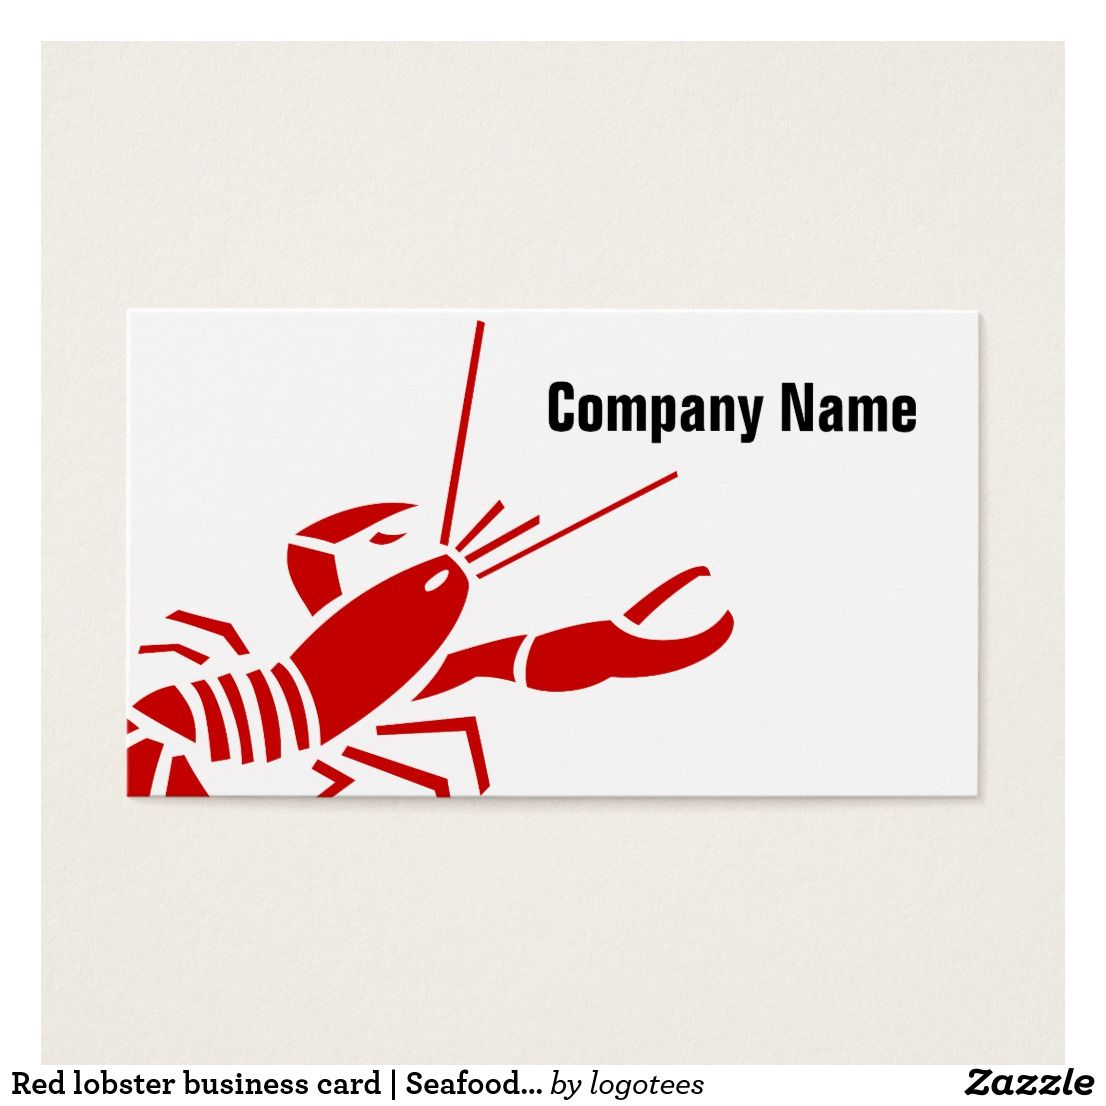 Red lobster business card | Seafood template | Pinterest | Seafood ...